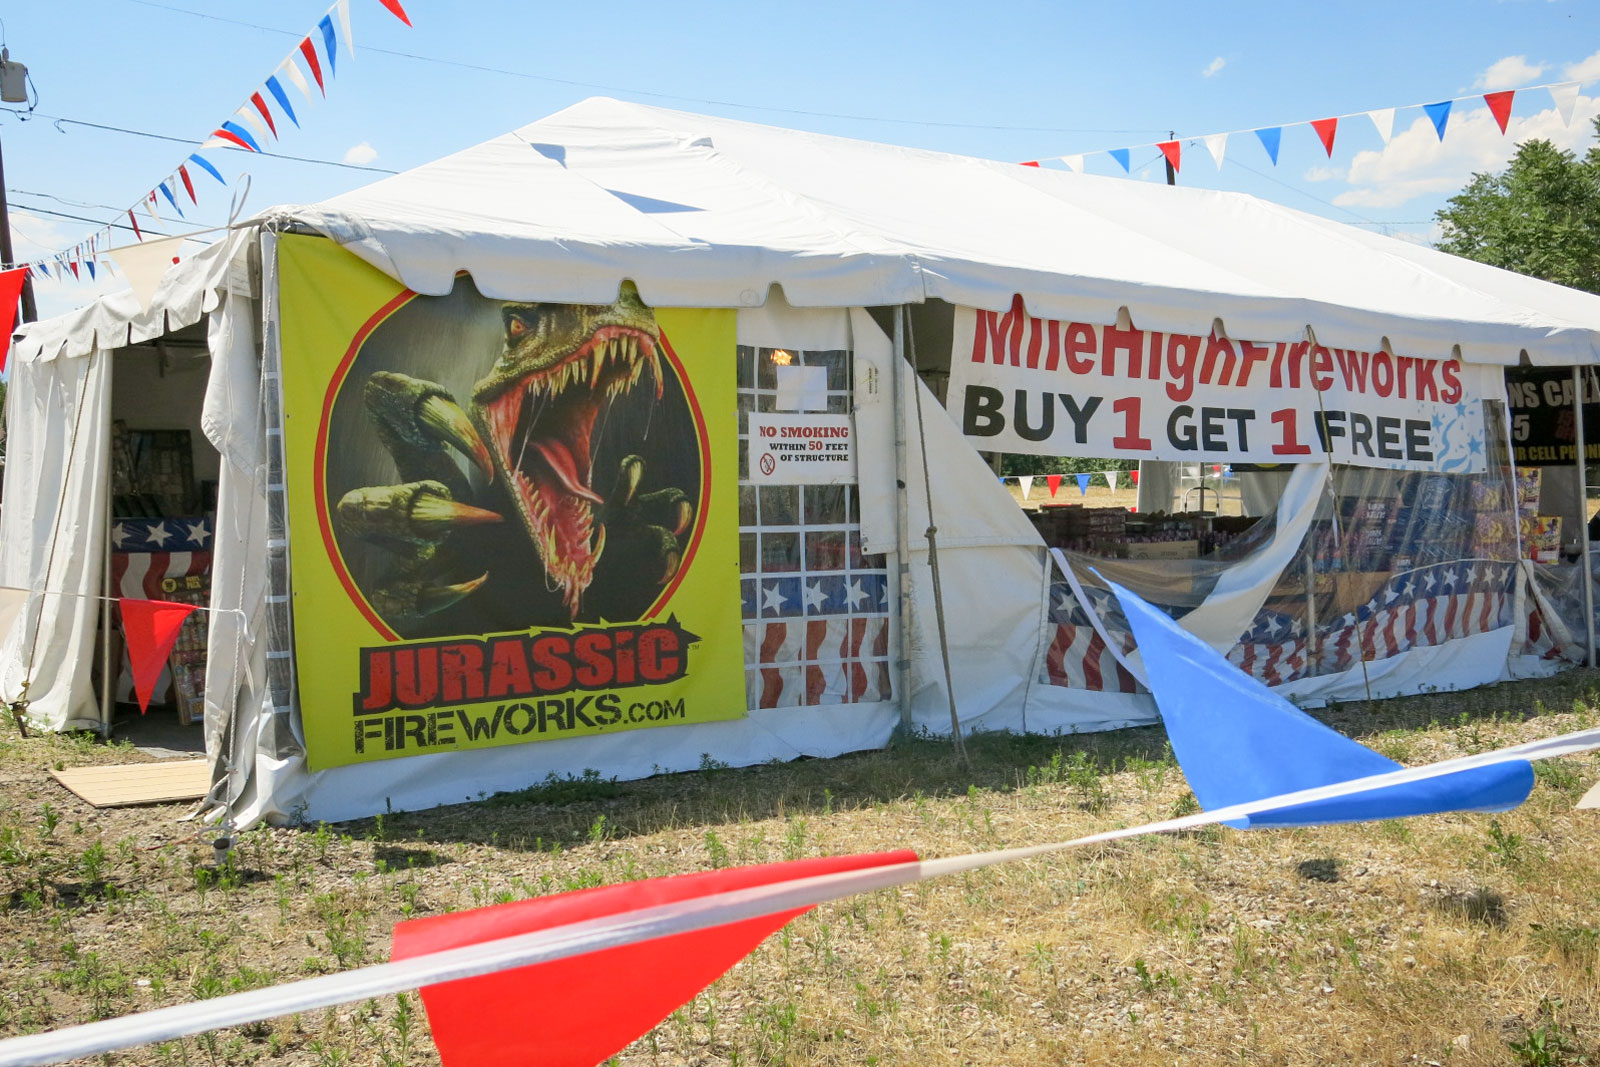 Photo: Fireworks Stand Adams County | Jurrassic Fireworks - GHood